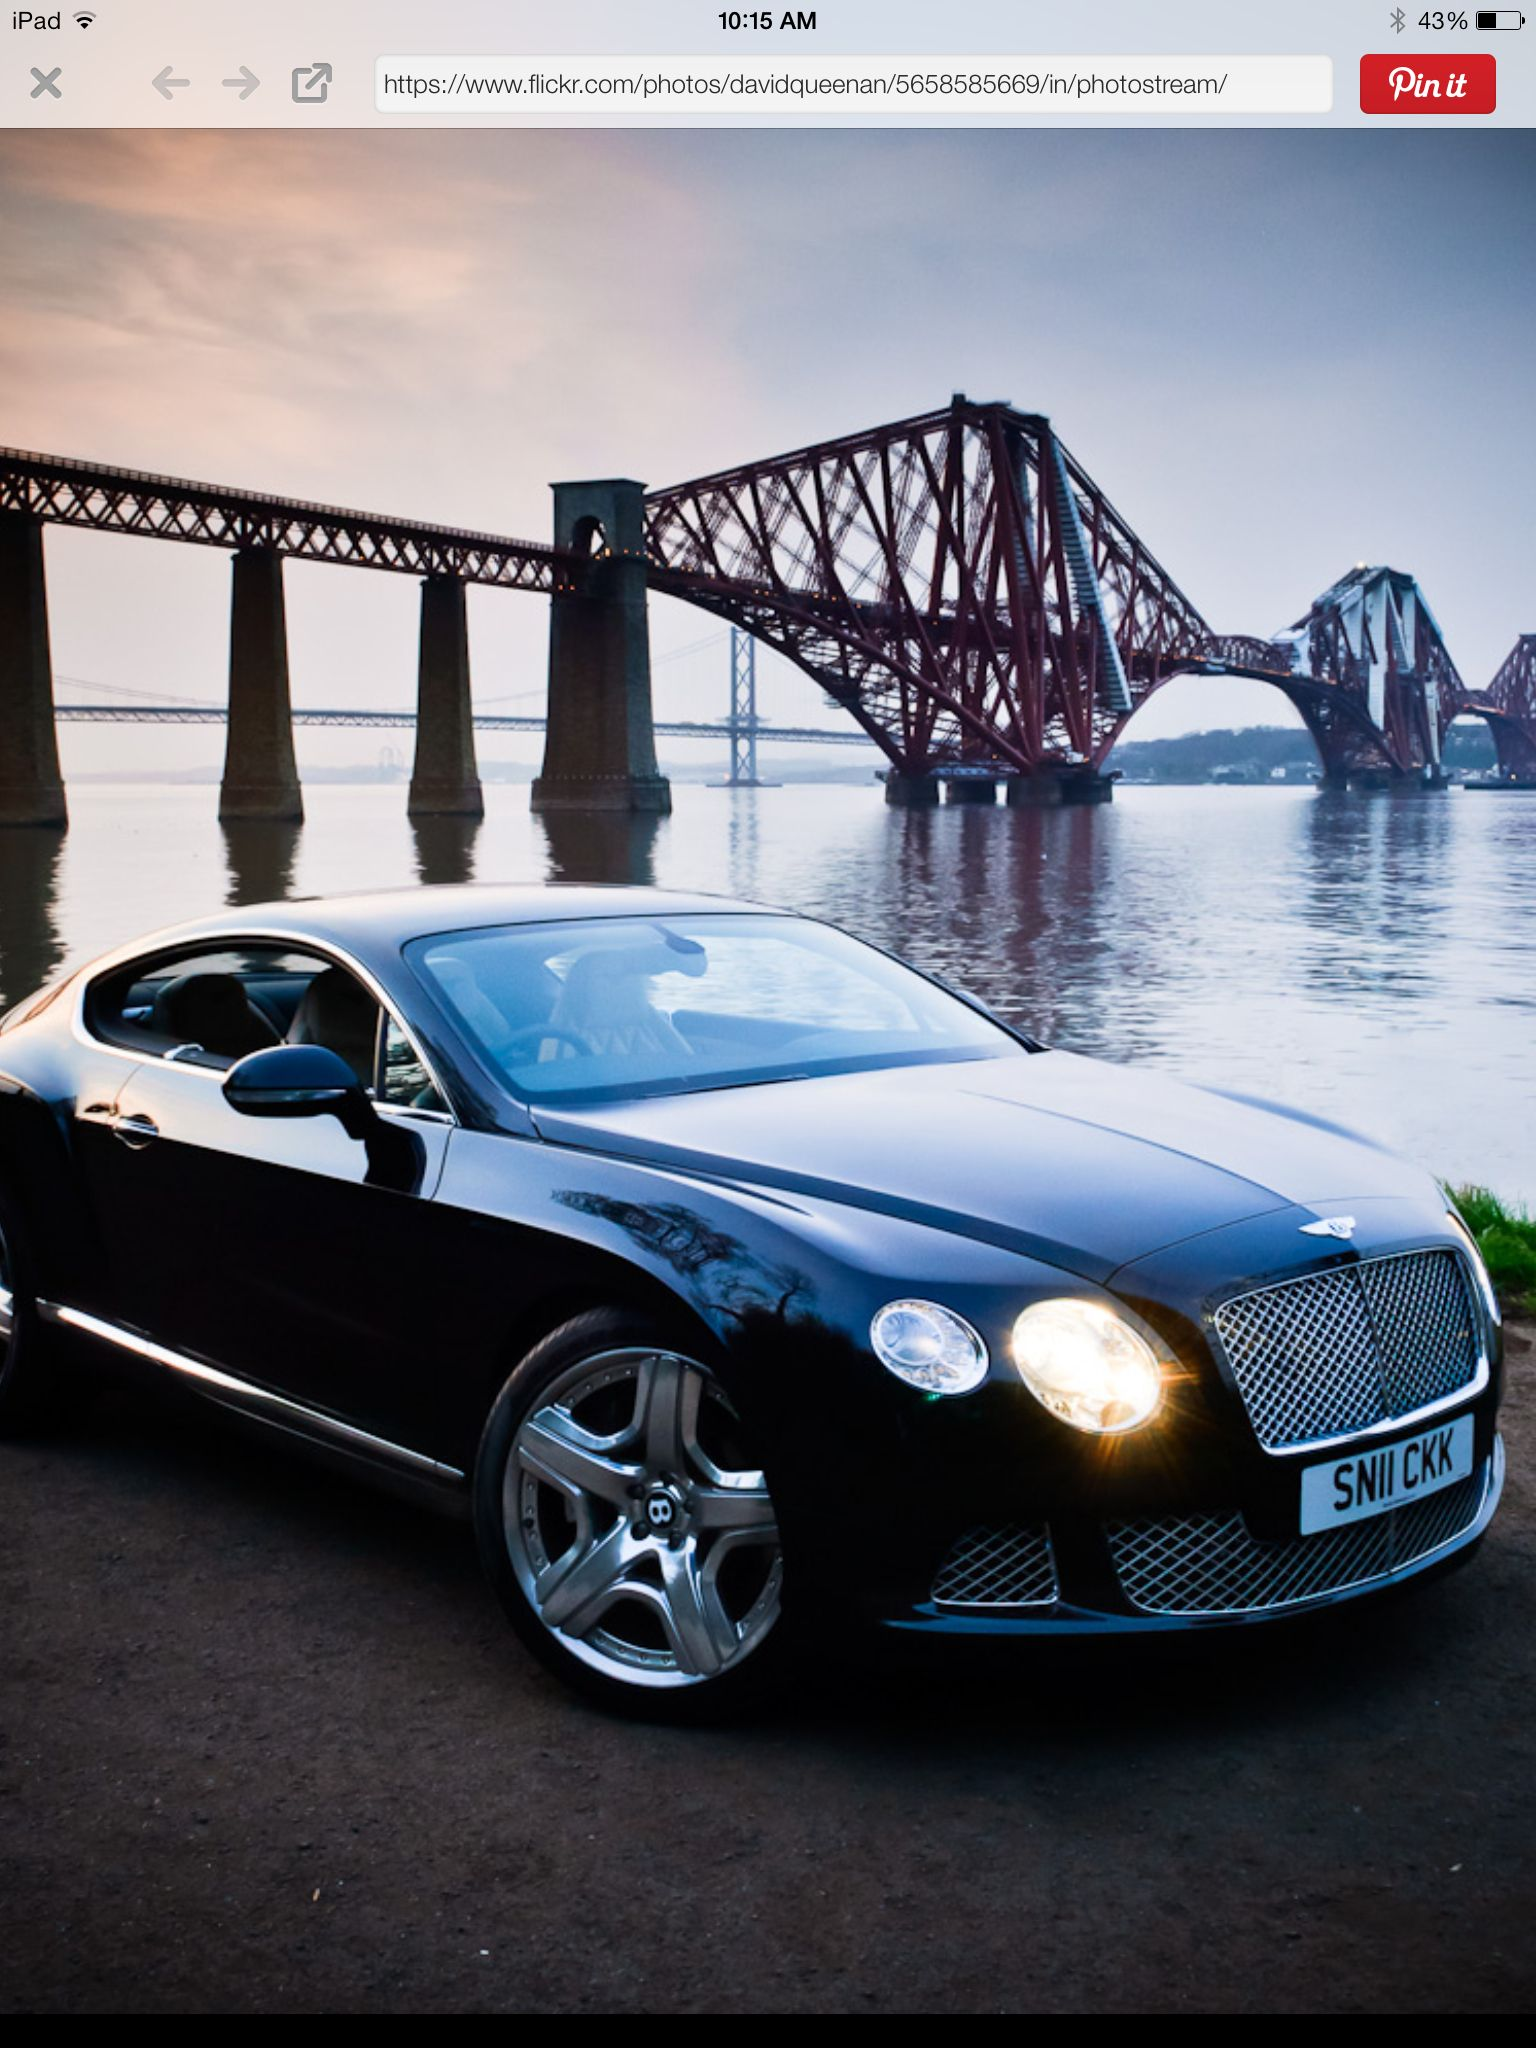 Cool looking Bentley Continental GT V8